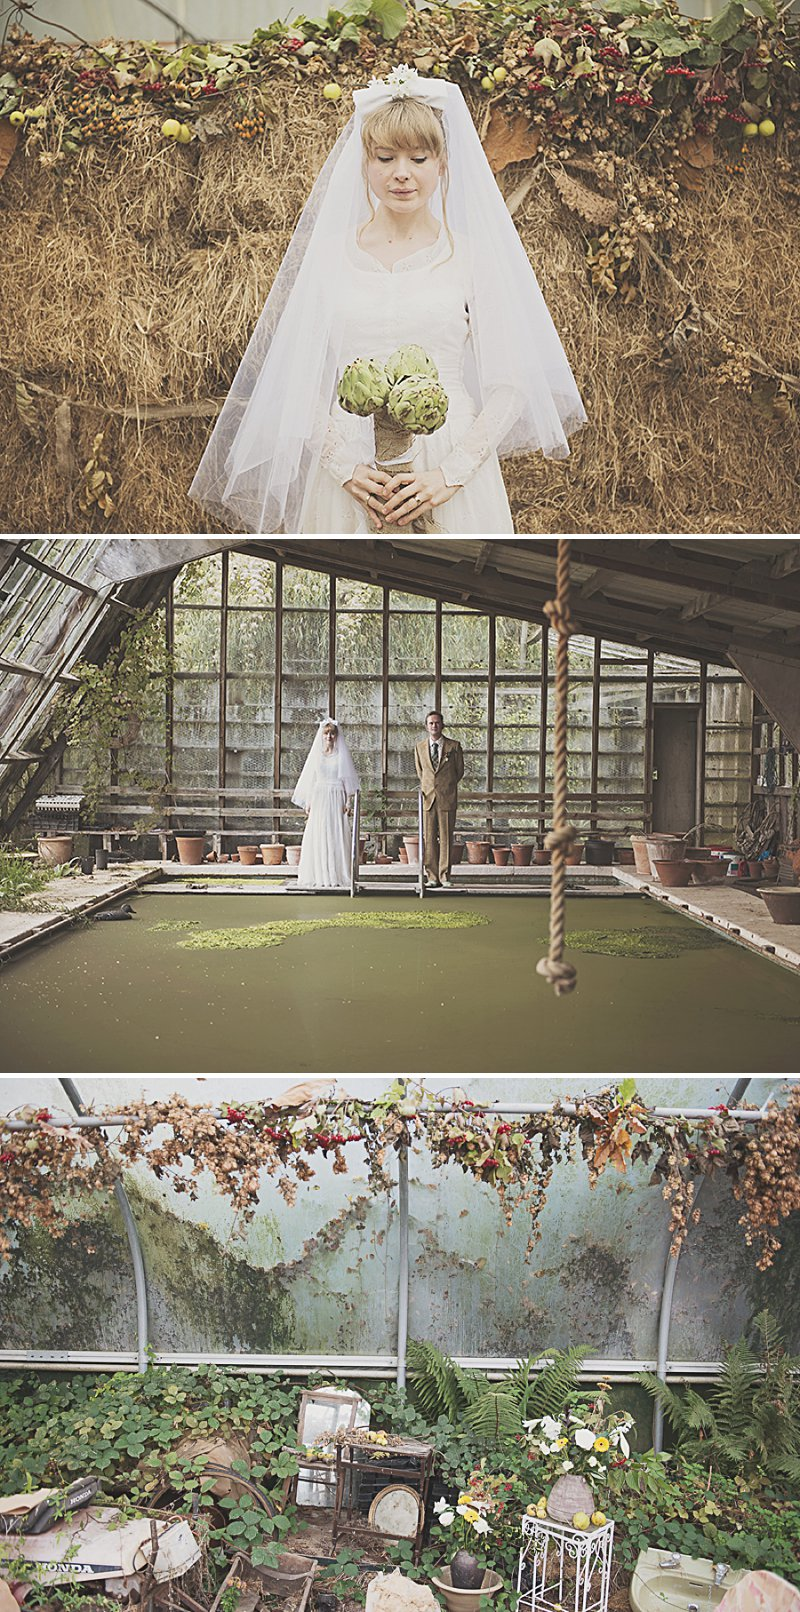 A DIY Wedding with homemade flowers, flamingo art, a polytunnel ceremony, apples, pumpkins, vintage dress and suit and vegetable bouquets.  Apple sharing ceremony at home with photography by Camilla Rosa_0011